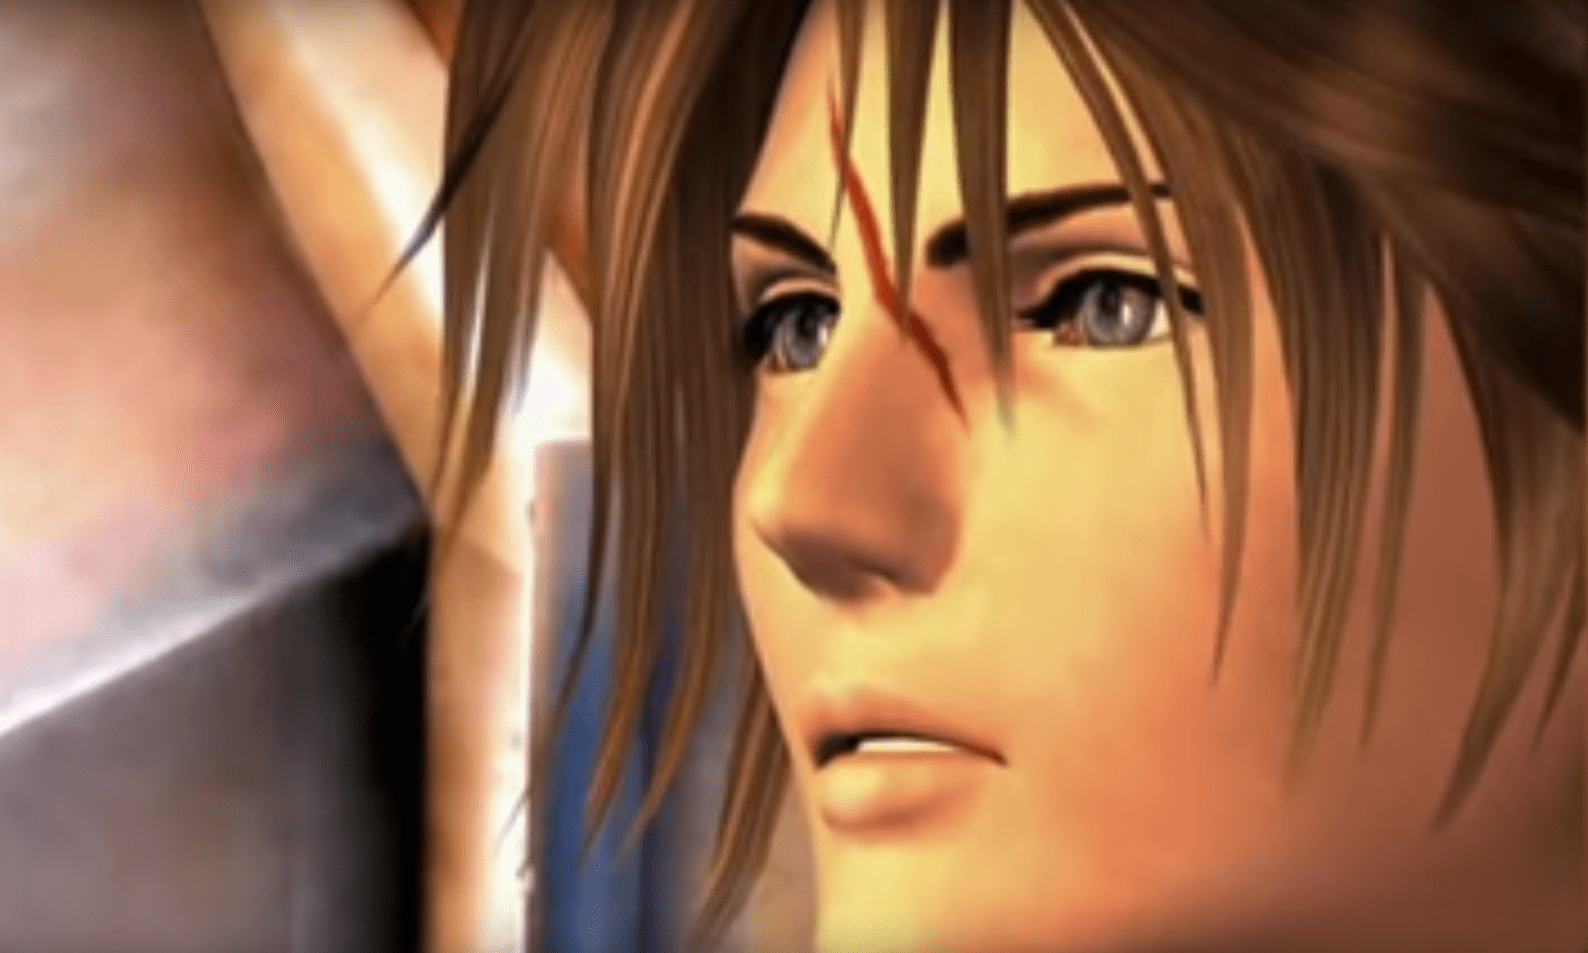 Final Fantasy 7 And Final Fantasy 8 Coming As A Twin Pack To Nintendo Switch, FF8 Remastered To PS4